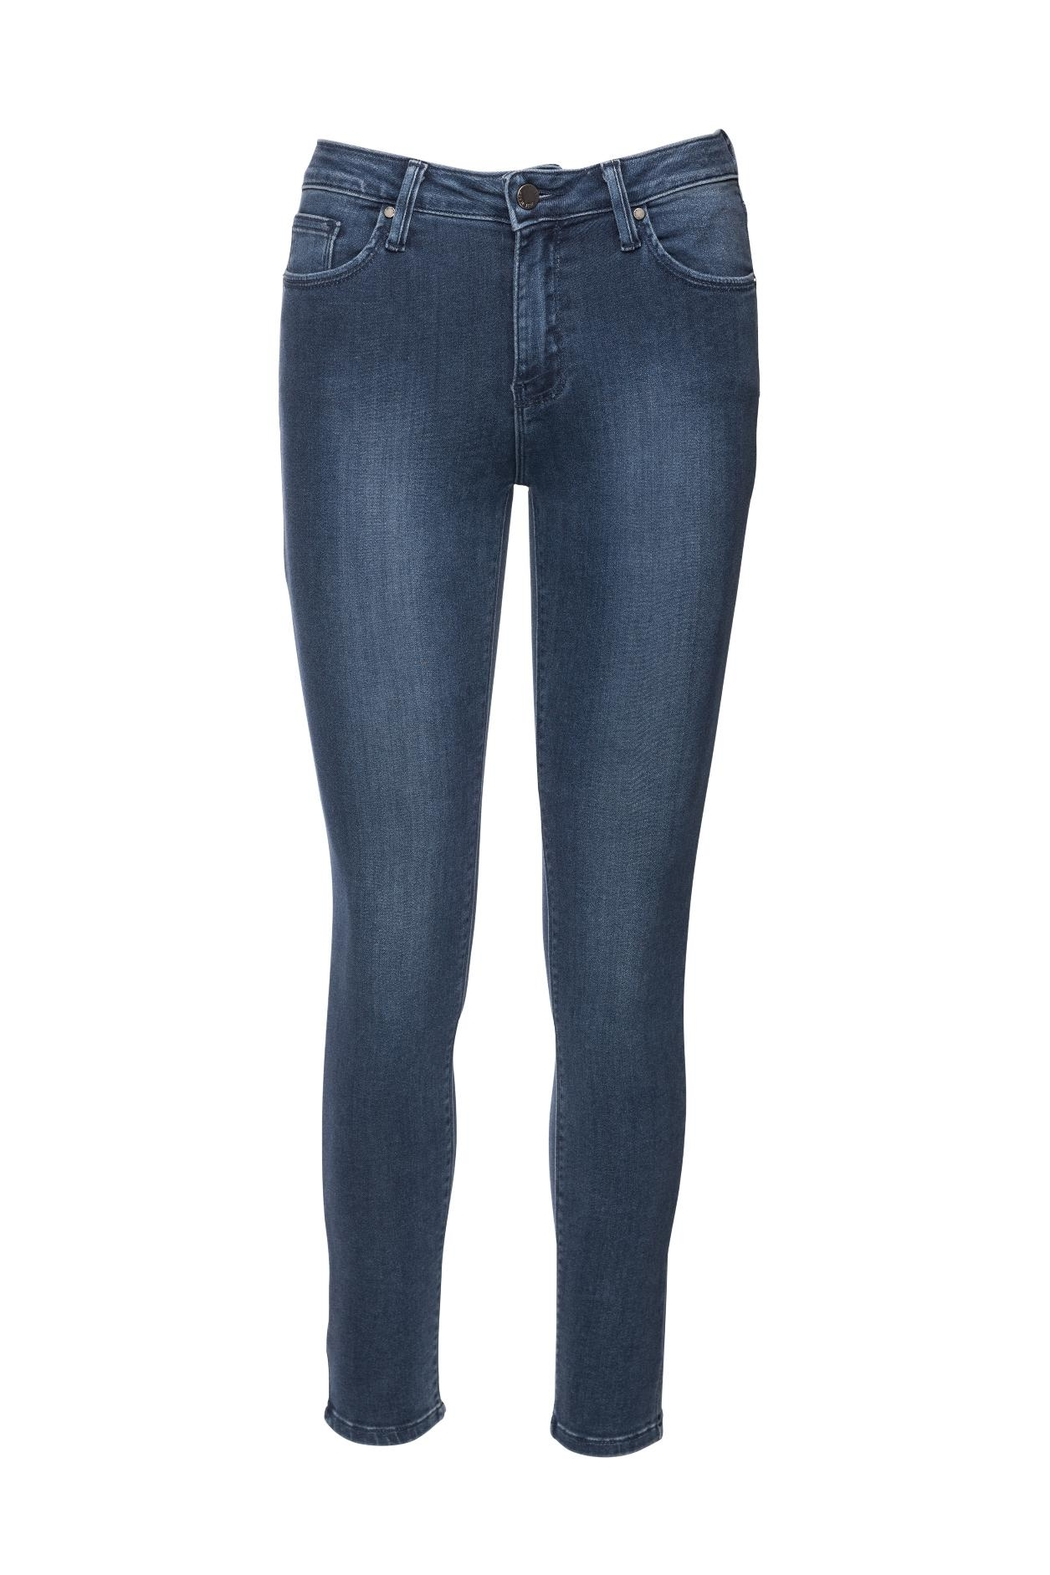 just black Ankle Skinny Denim Jeans - Main Image